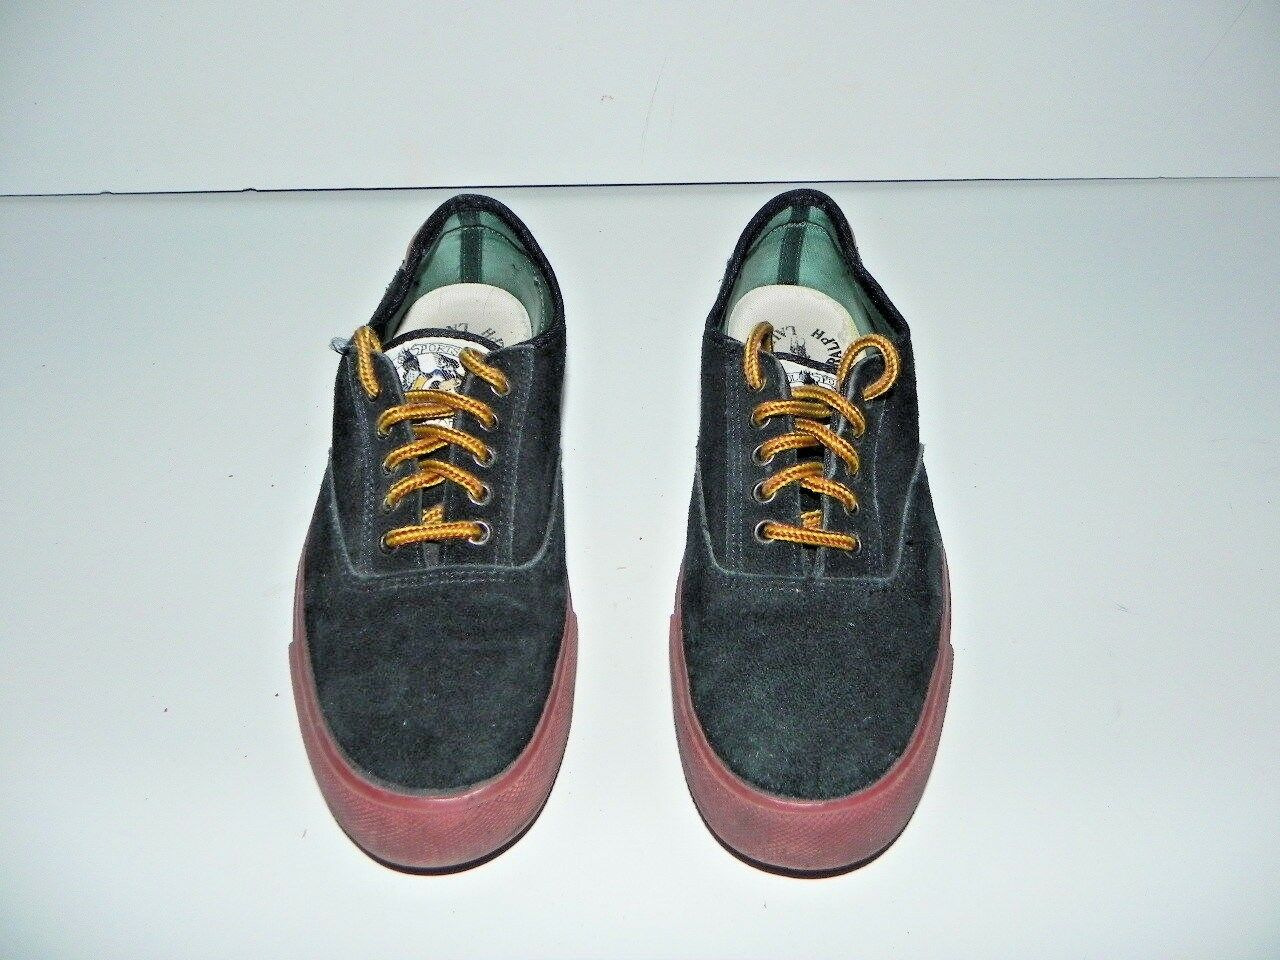 POLO vintage RALPH LAUREN Suede skid resistant sole 8.5 D vintage POLO made in Korea Rare 6bc3f4